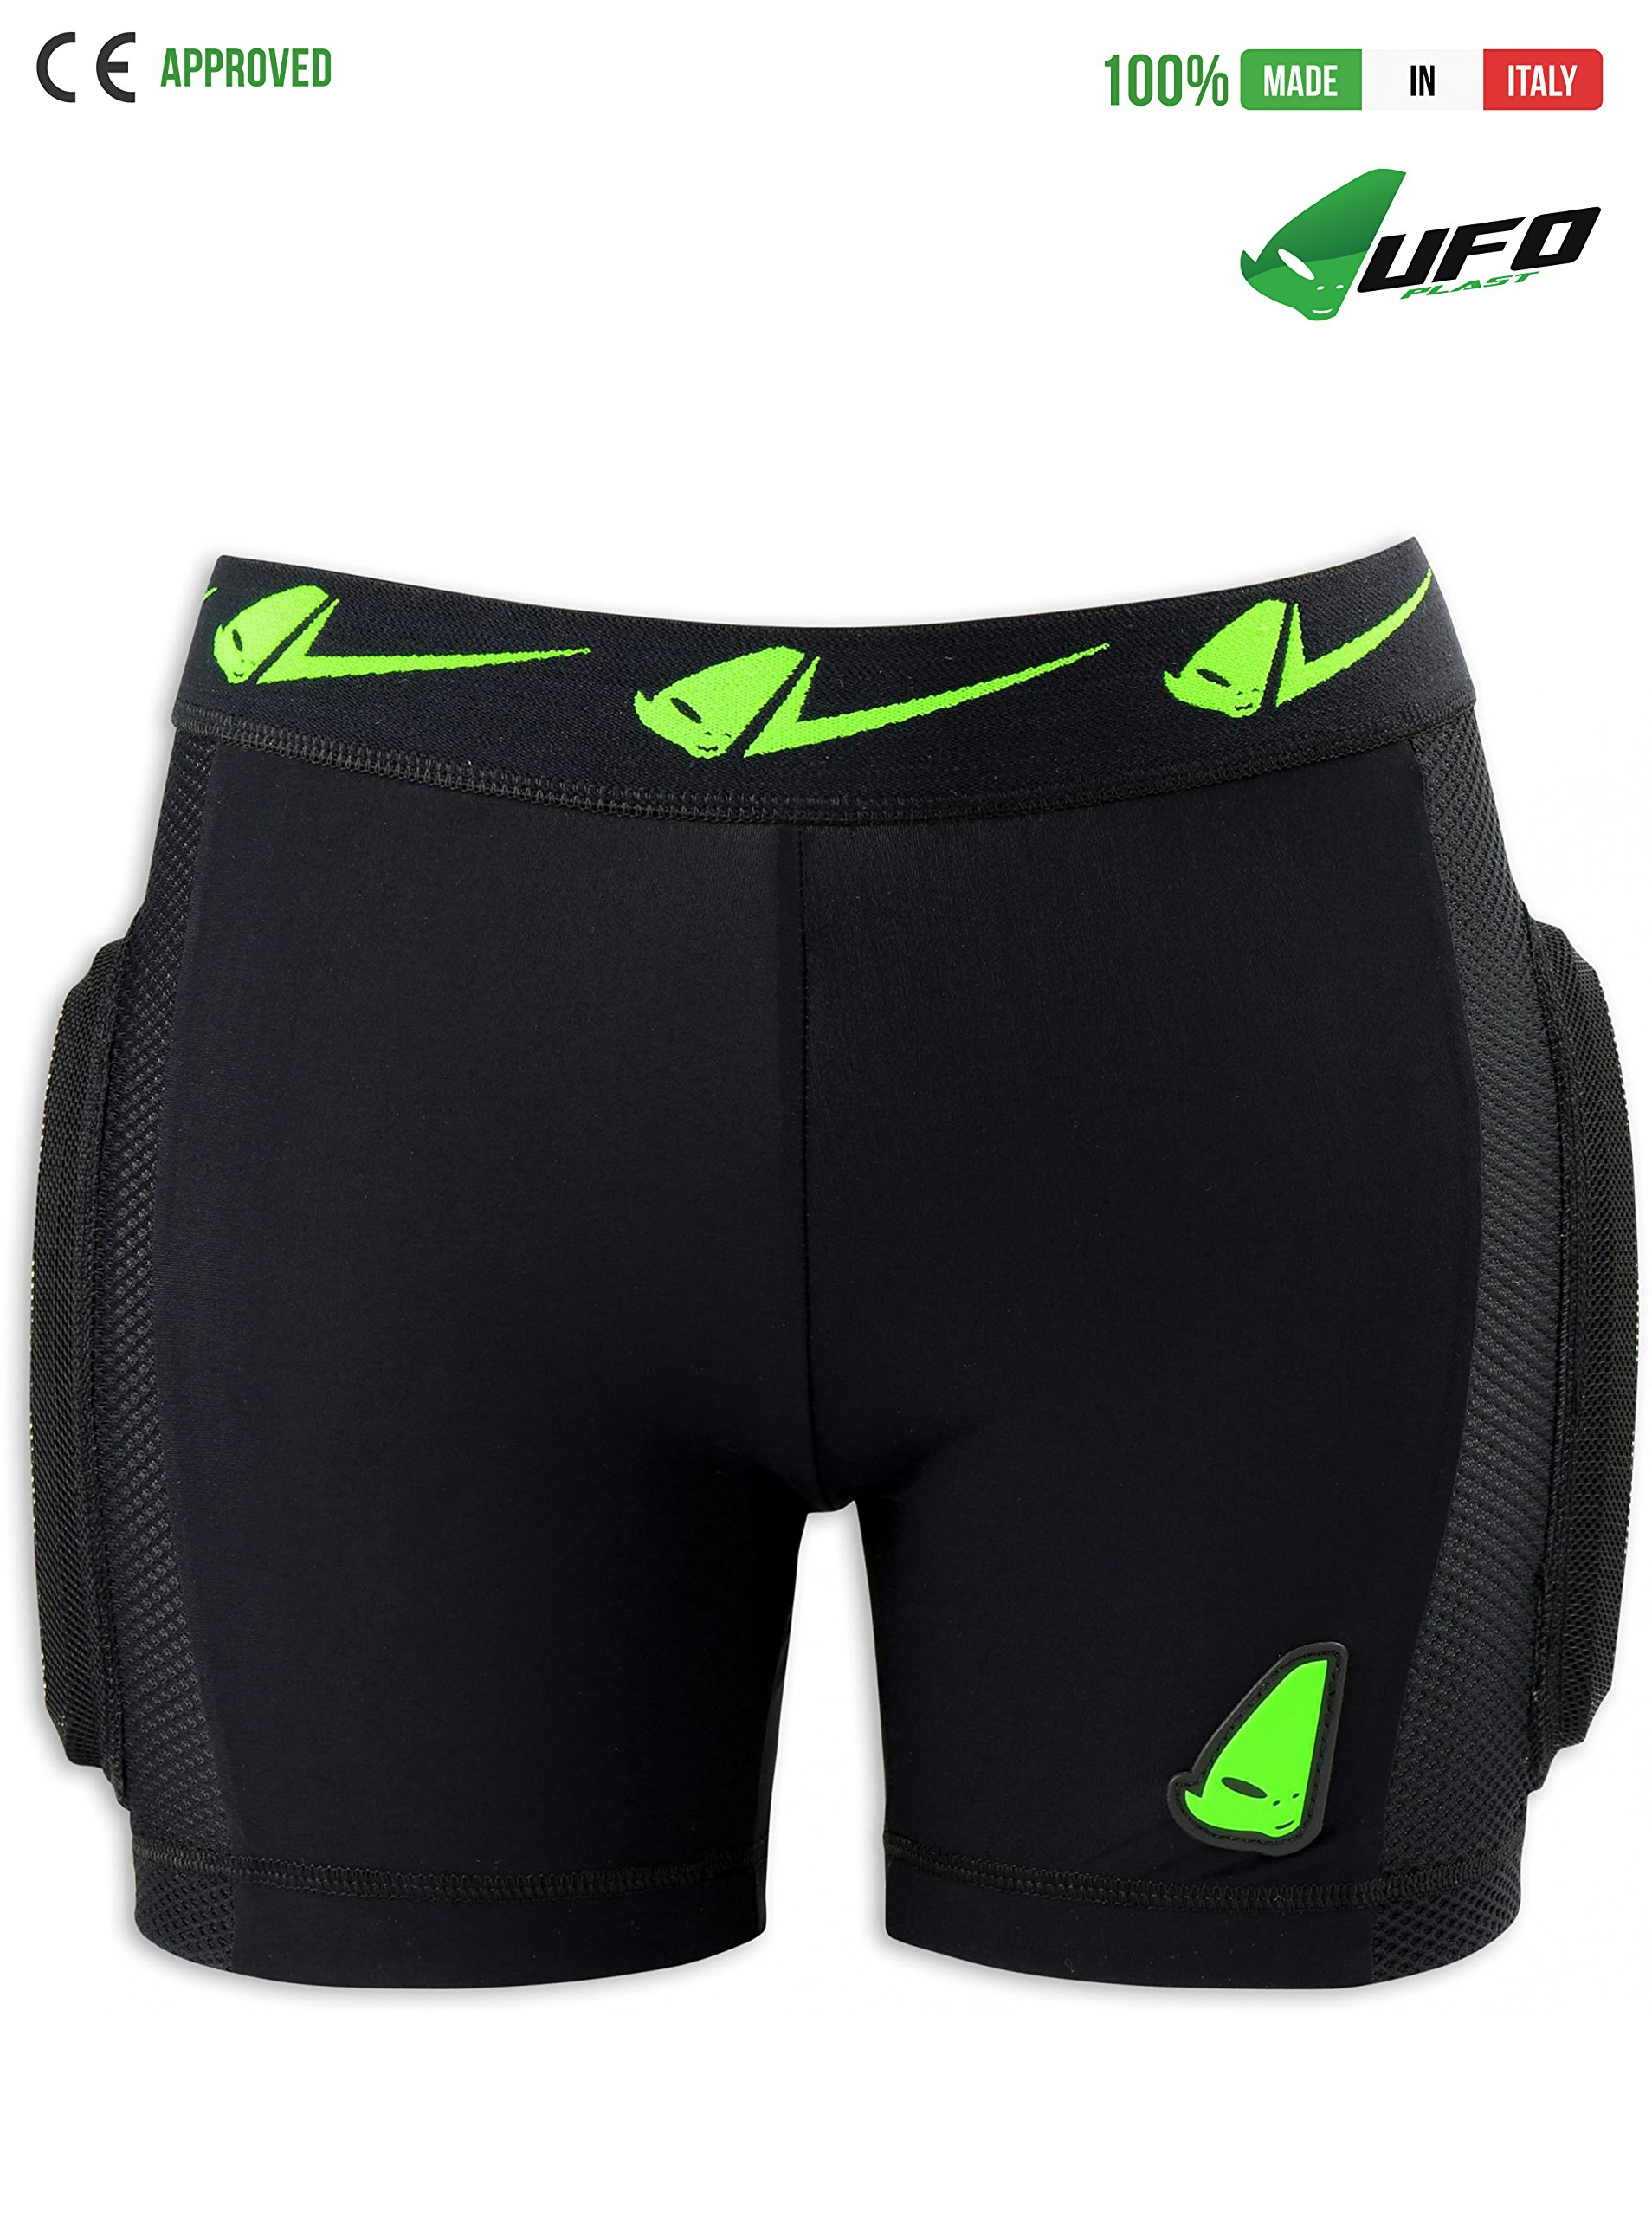 UFO PLAST Made in Italy PI02355 KOMBAT Padded Shorts for Kids / Hip, Side, Removable Back Multilayer Protection / Light-Breathable Fabric, Perforated Microshock Material / Size: M / Color: Green